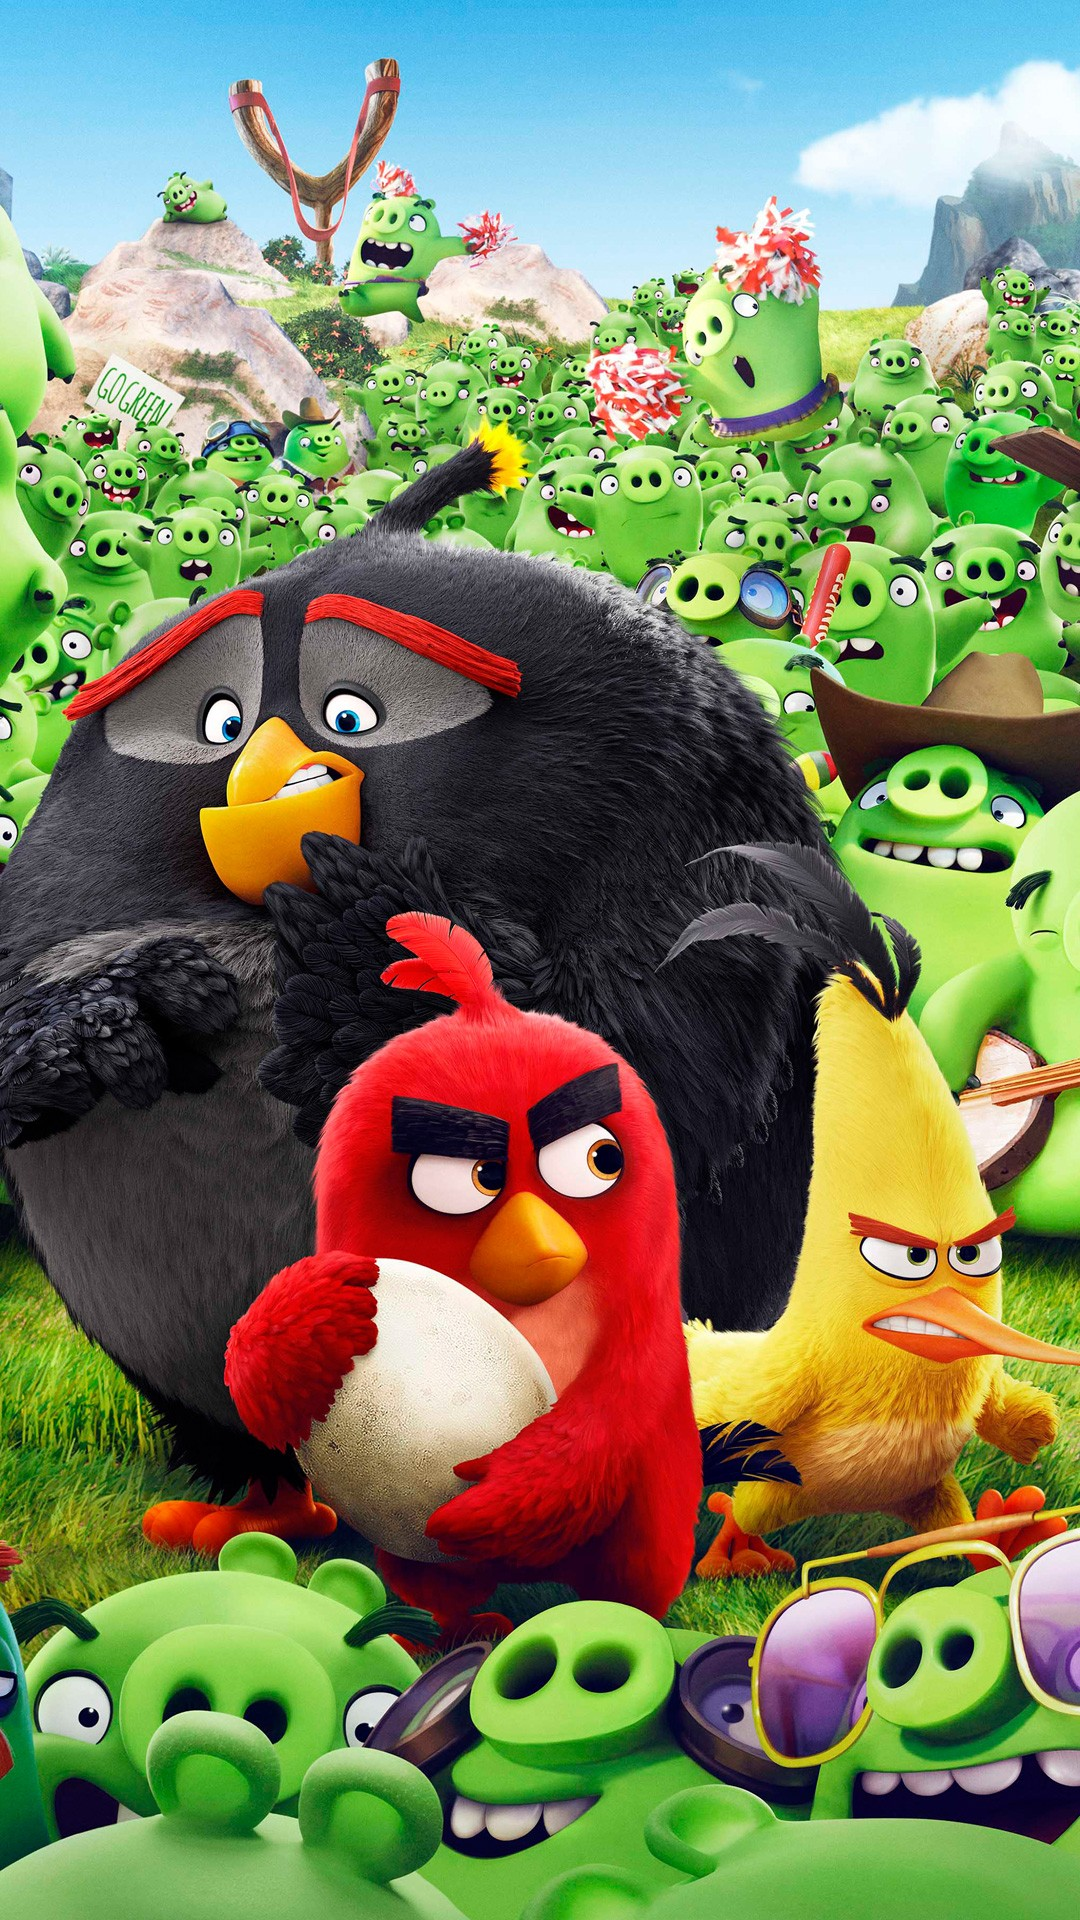 Wallpaper Iphone 4 Cartoon Angry Birds Animation Movie Wallpapers Hd Wallpapers